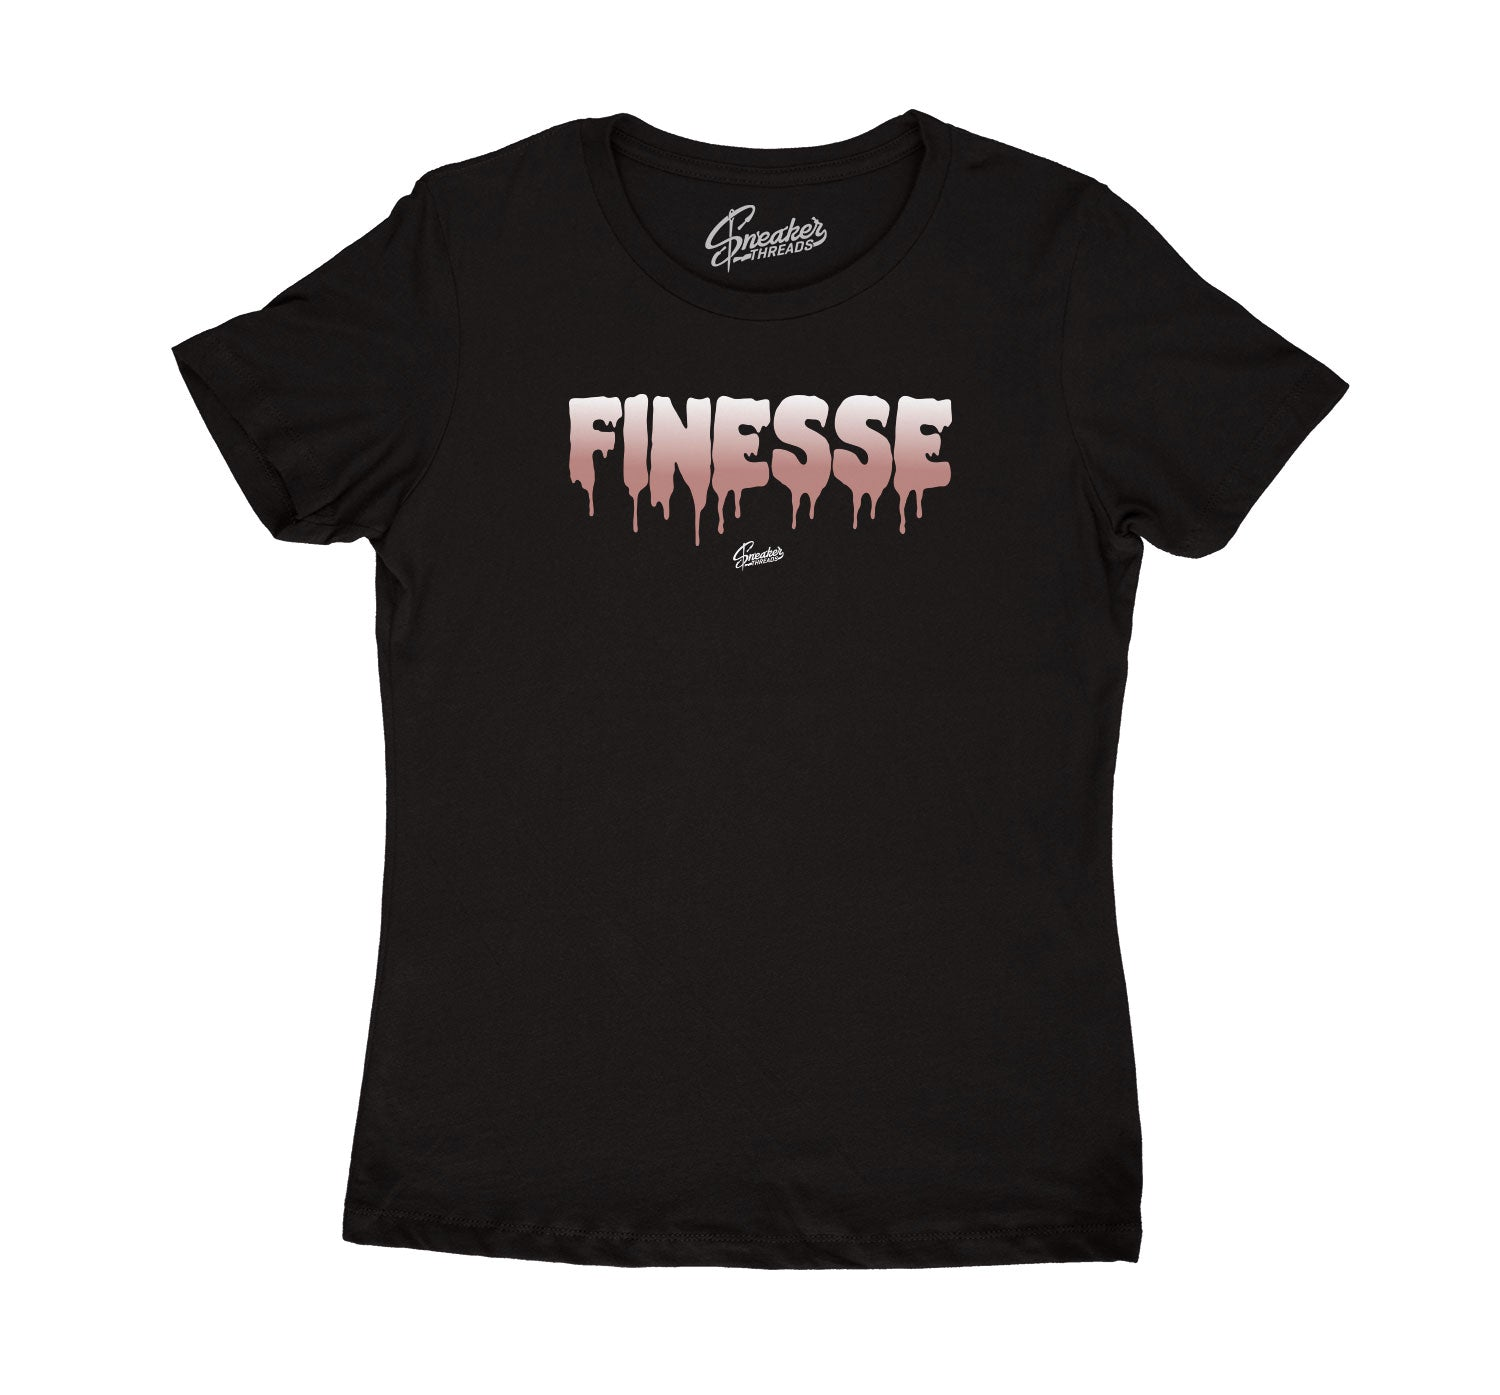 womens tees designed to match the Jordan 1 fearless collection